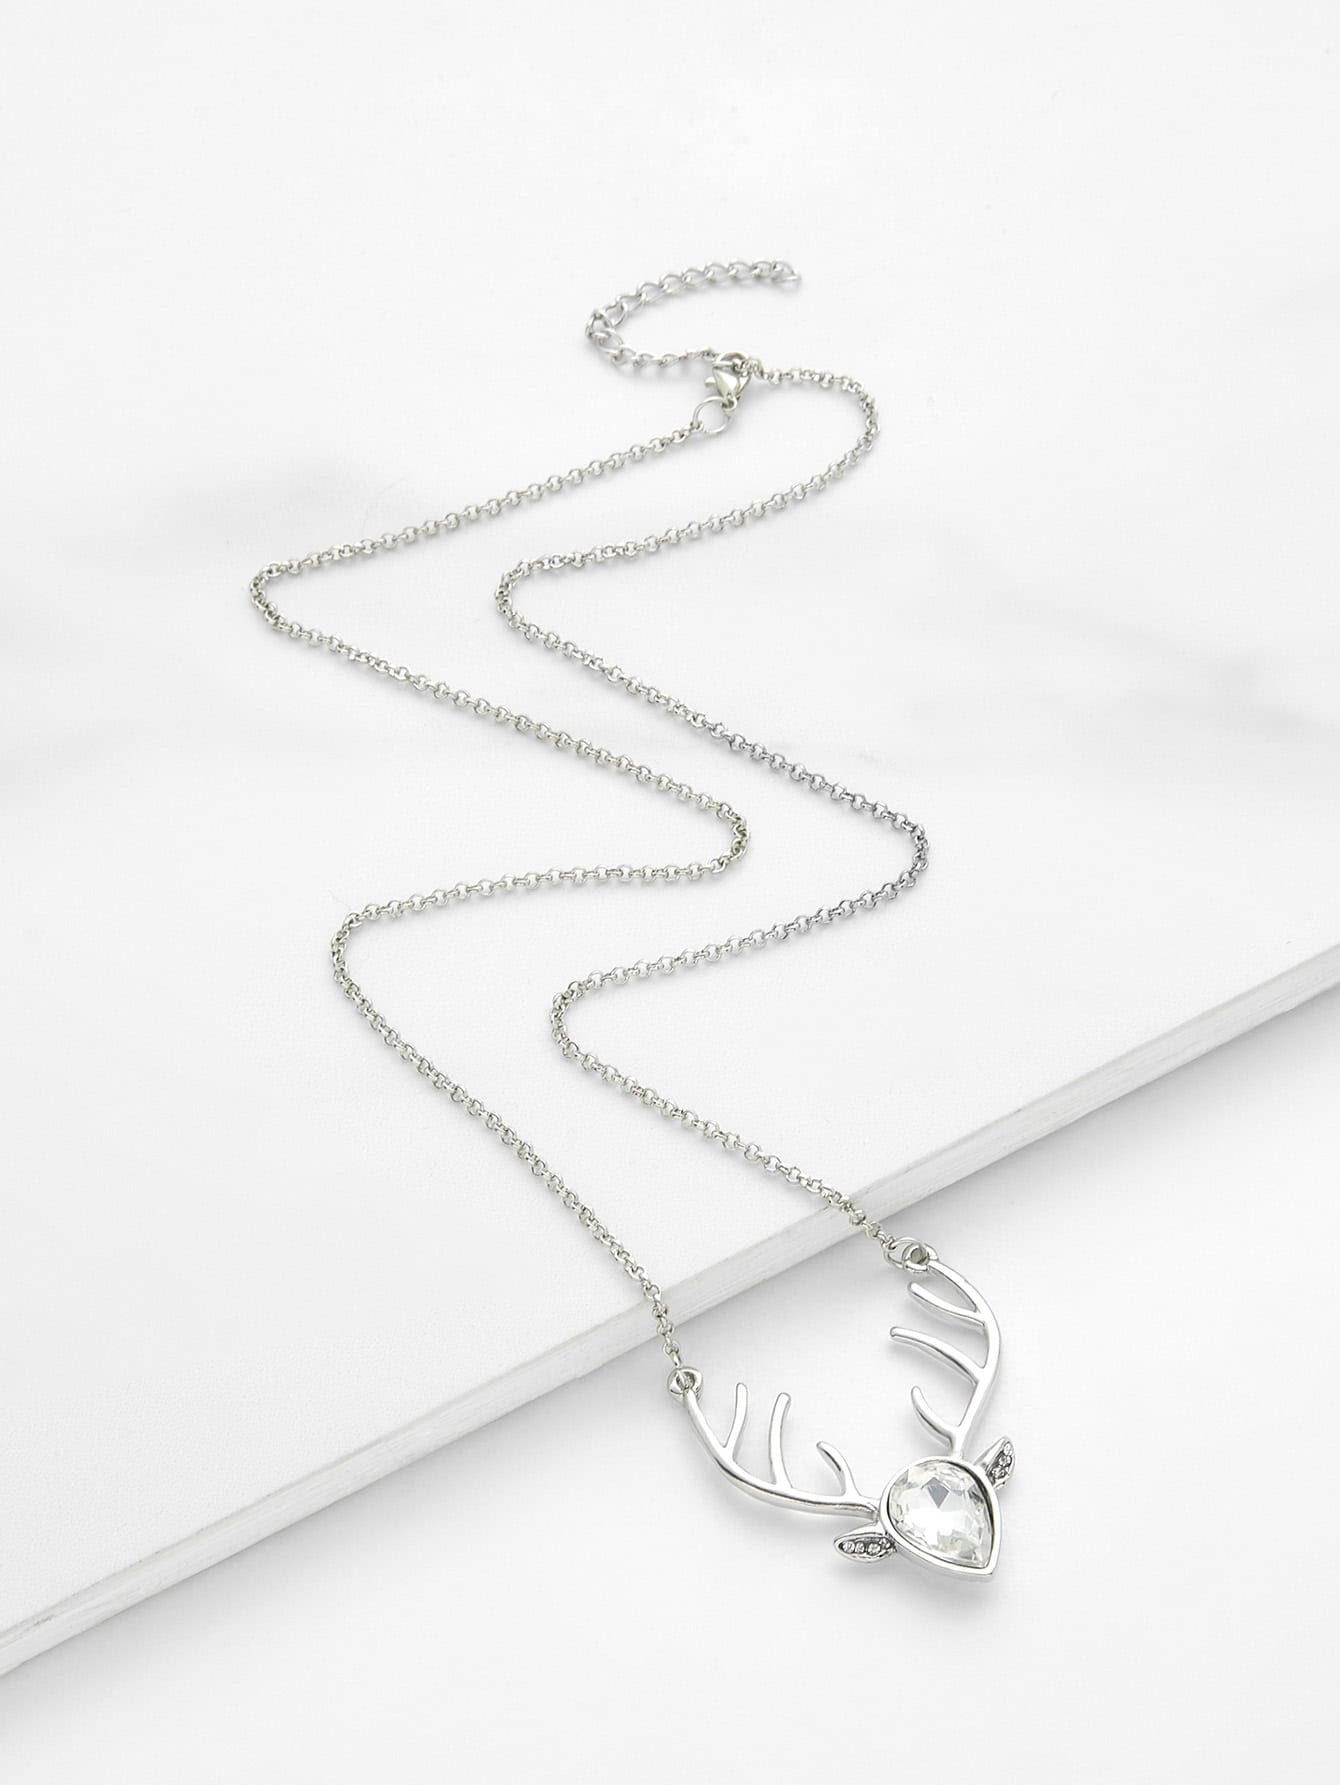 Water Drop Crystal & Antler Pendant Chain Necklace round drop chain necklace